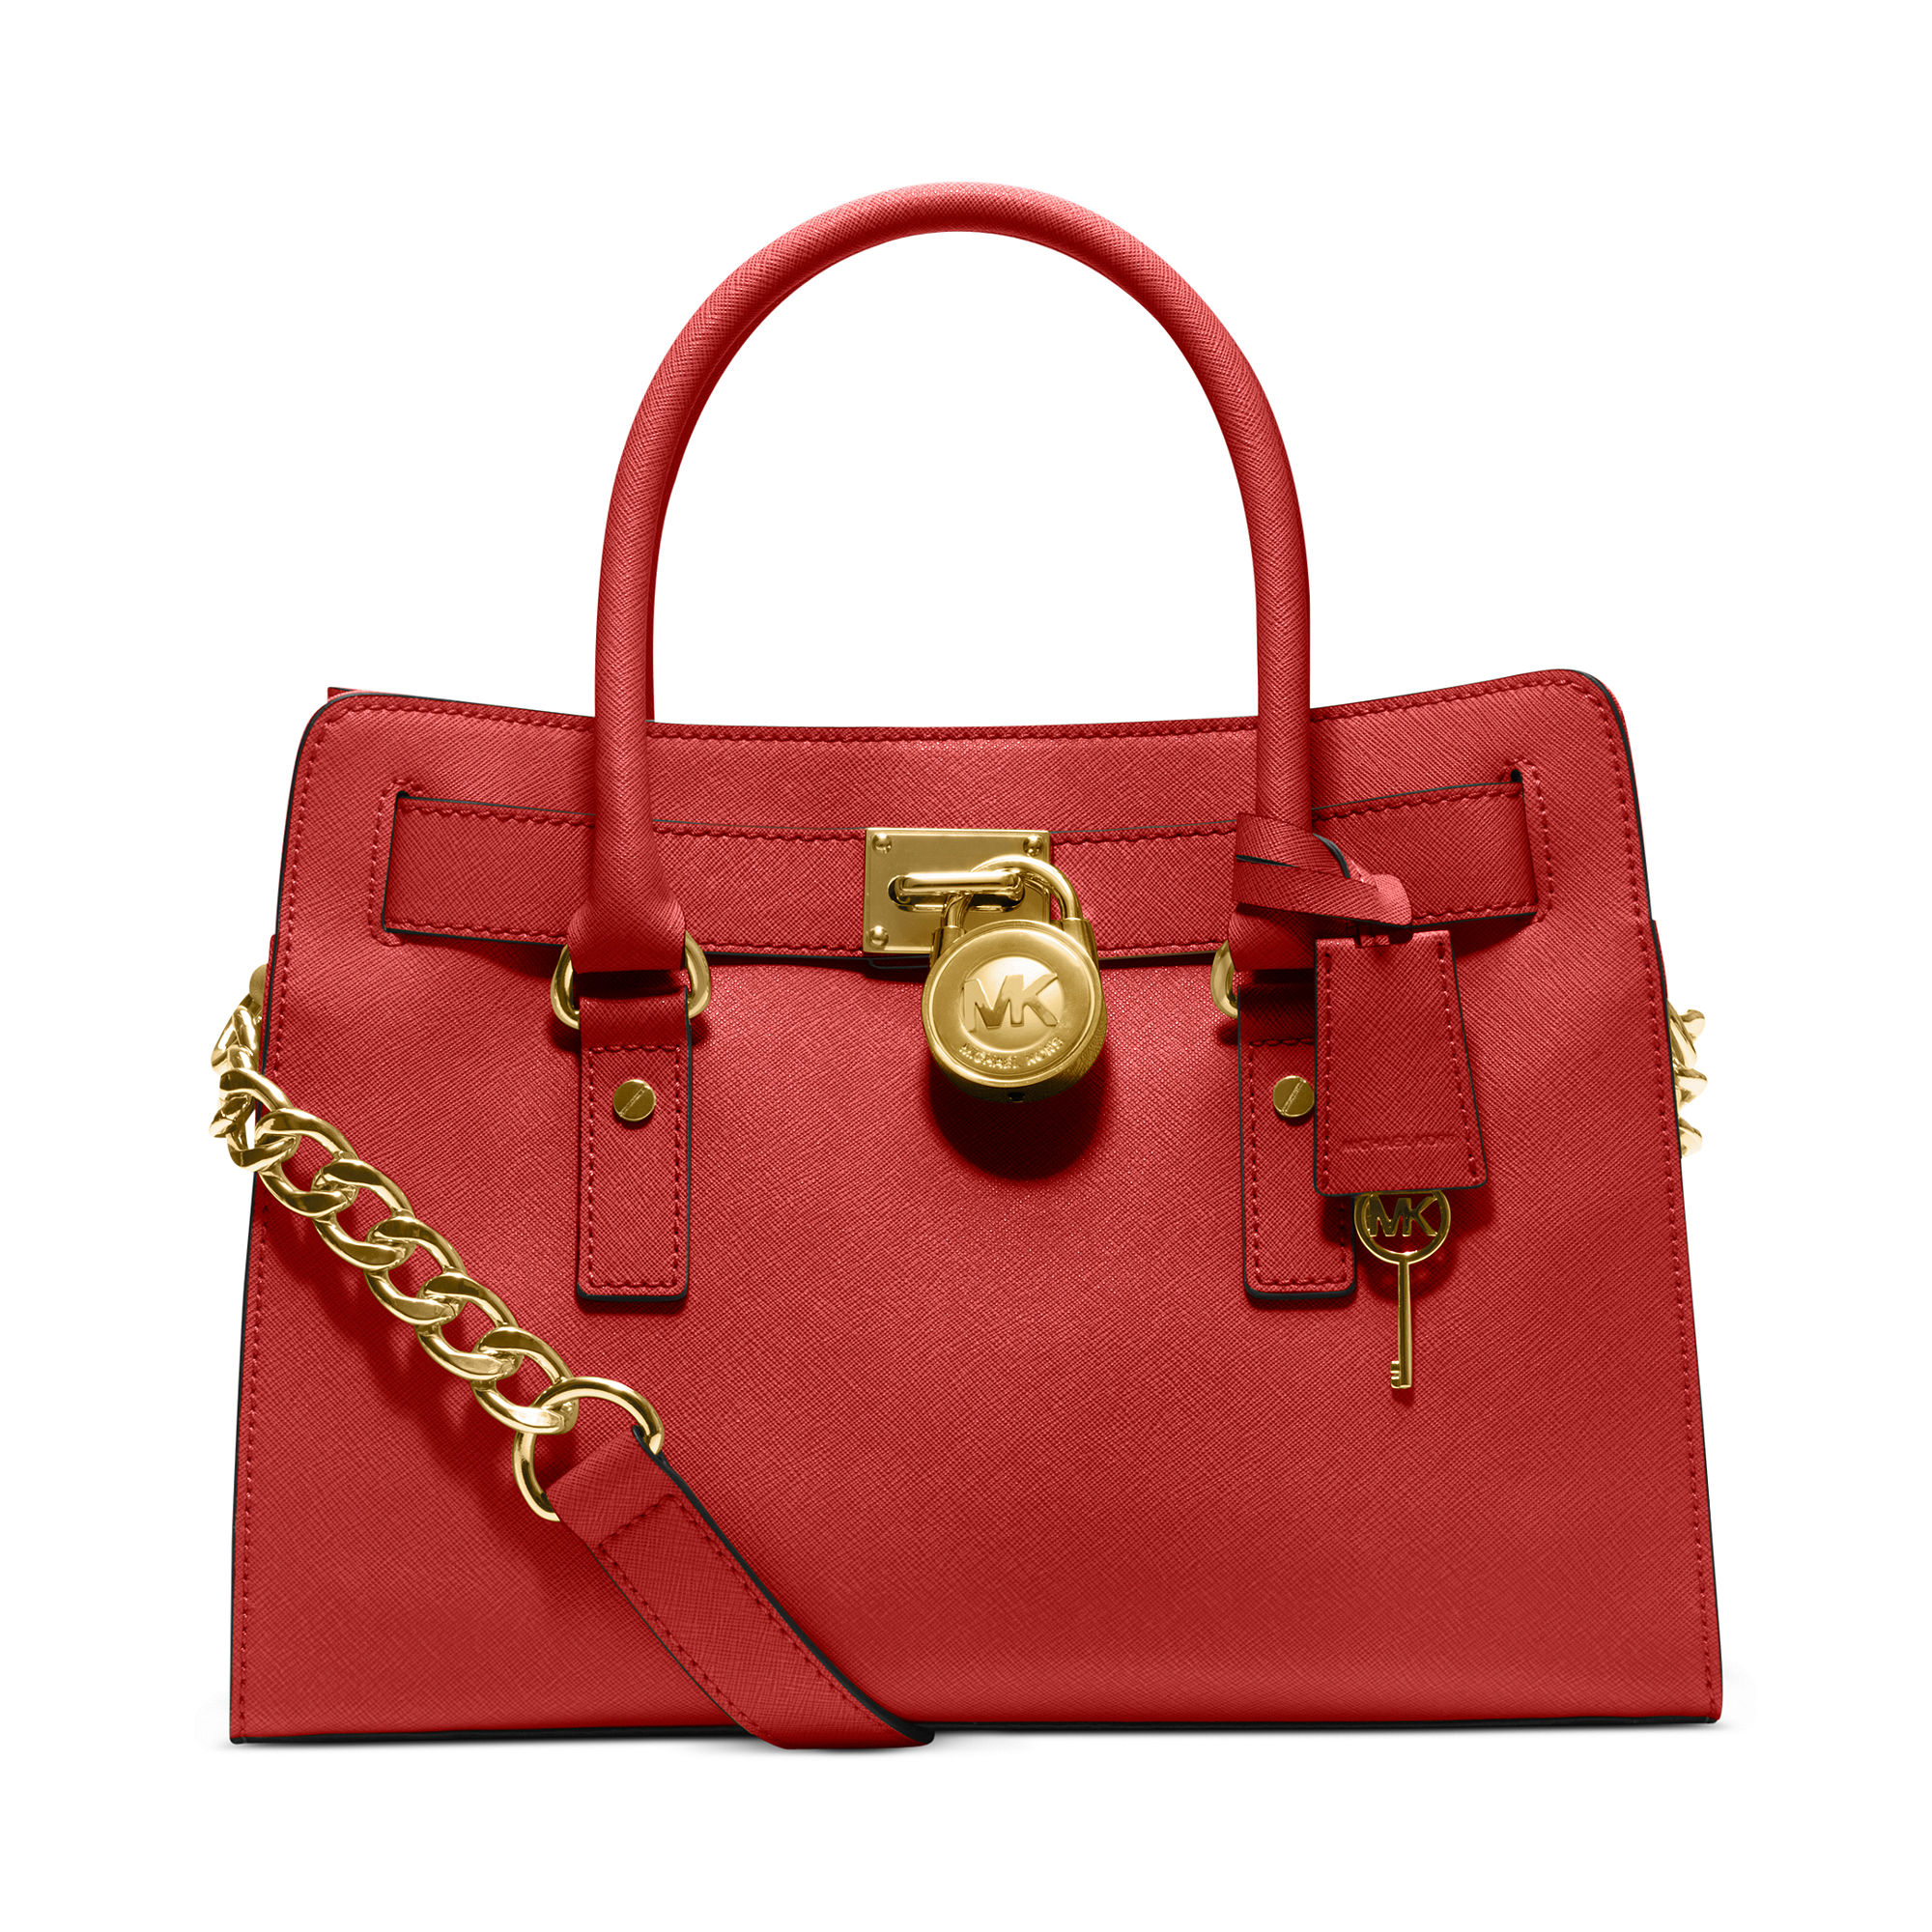 michael kors hamilton saffiano leather ew satchel in red. Black Bedroom Furniture Sets. Home Design Ideas